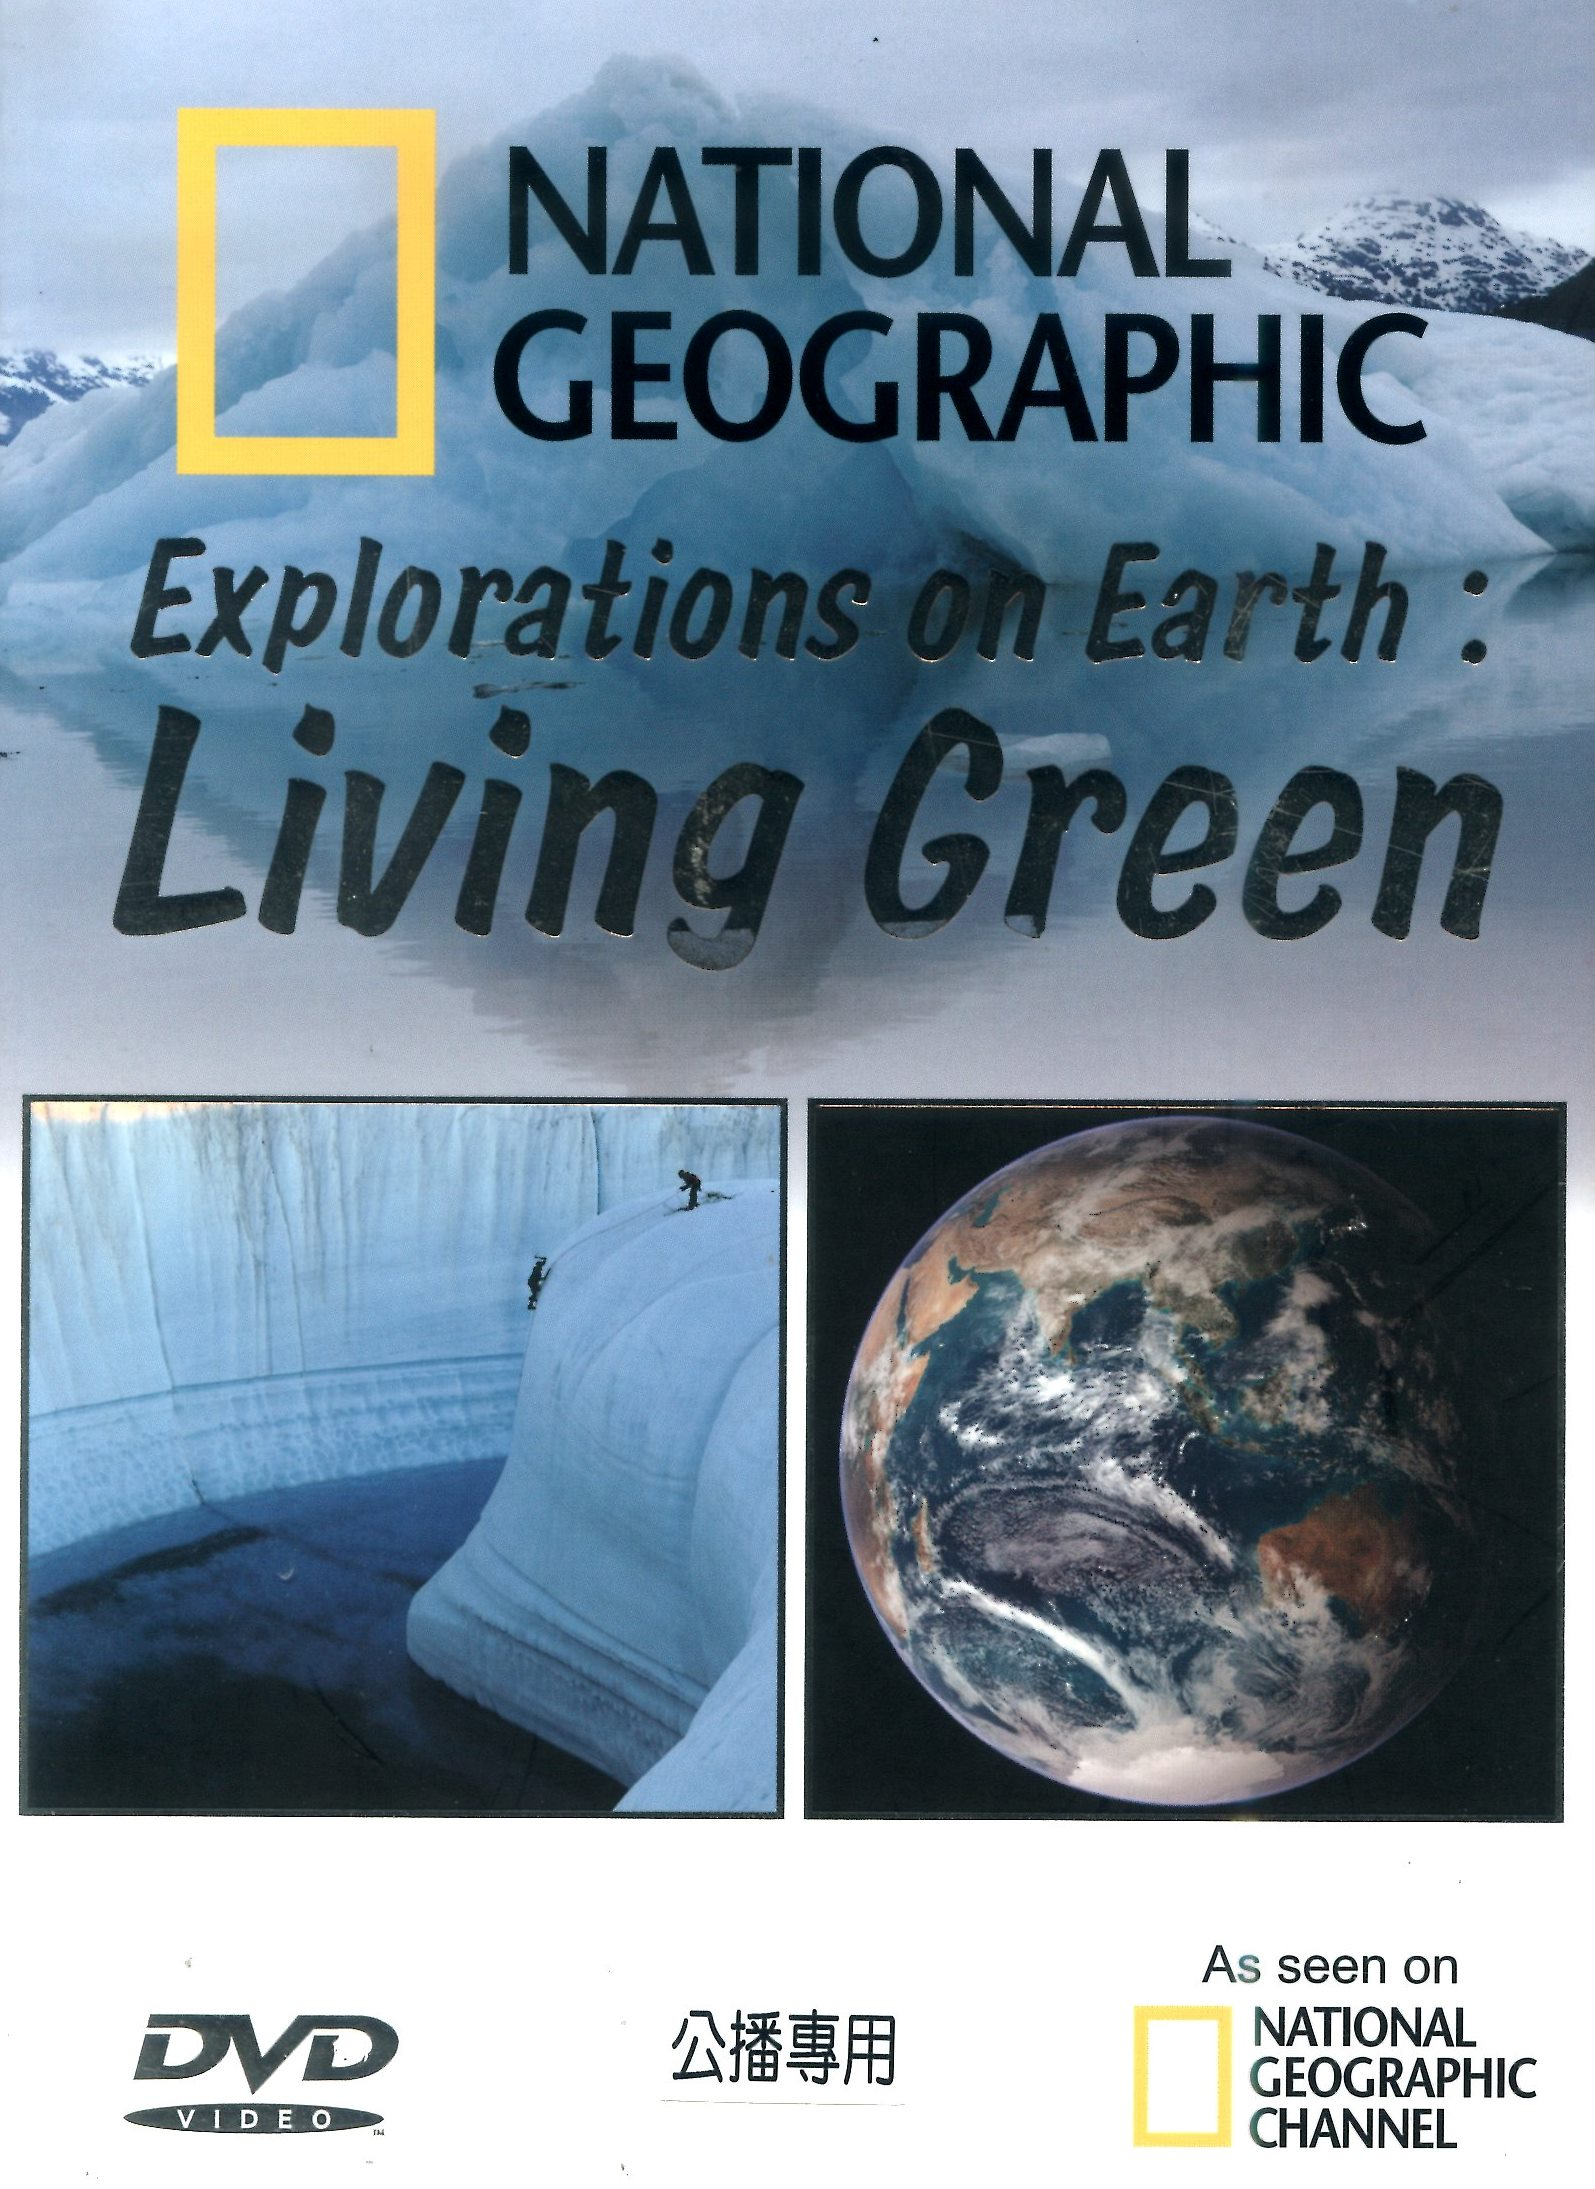 Explorations on Earth living green = 探索地球 : 綠色生活